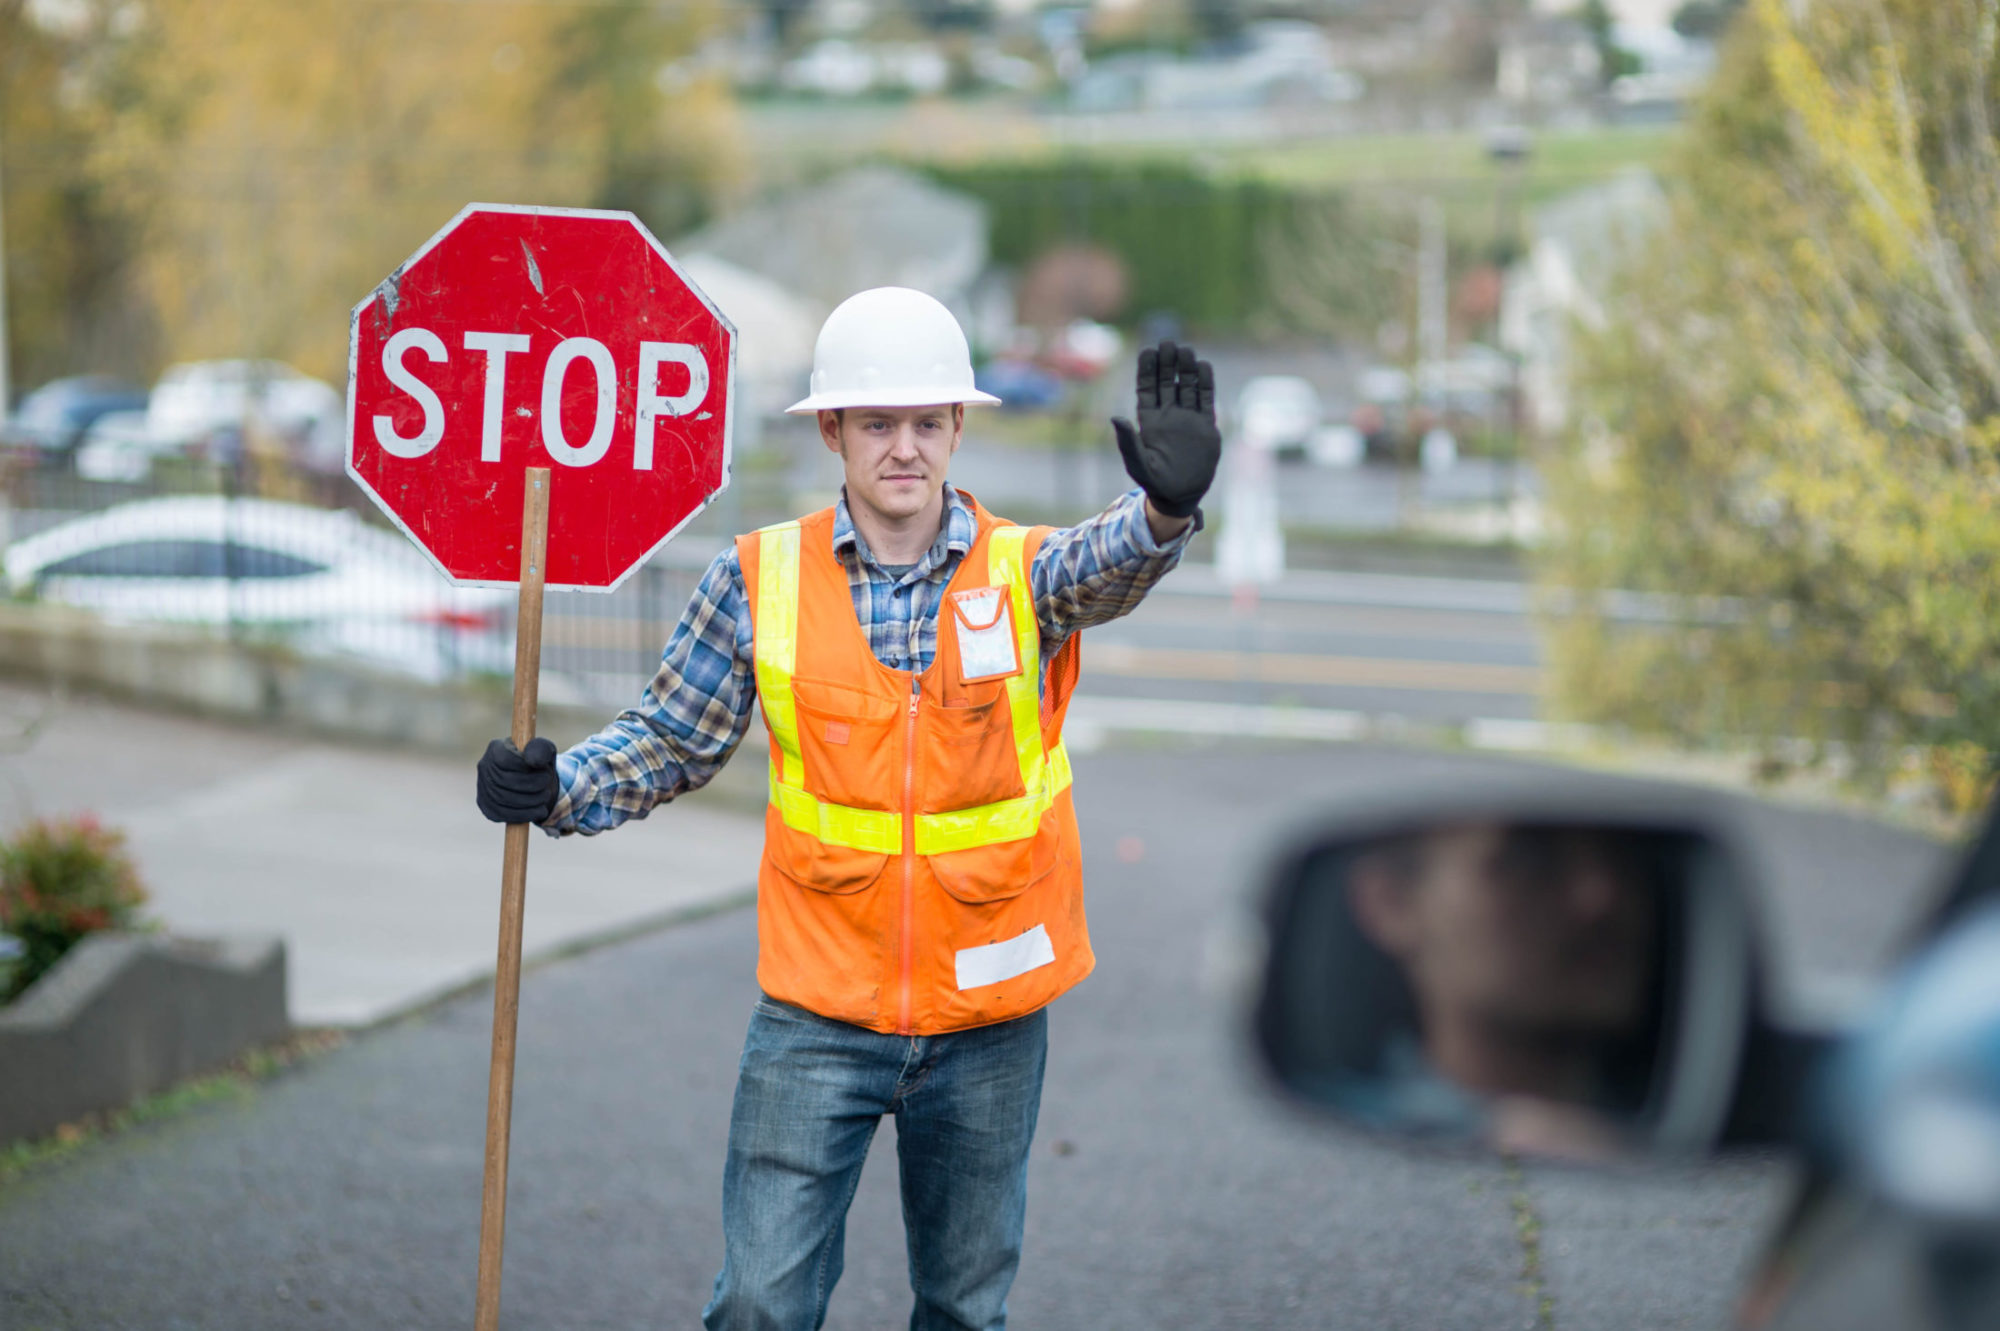 Flagger holds up stop sign for traffic in construction zone